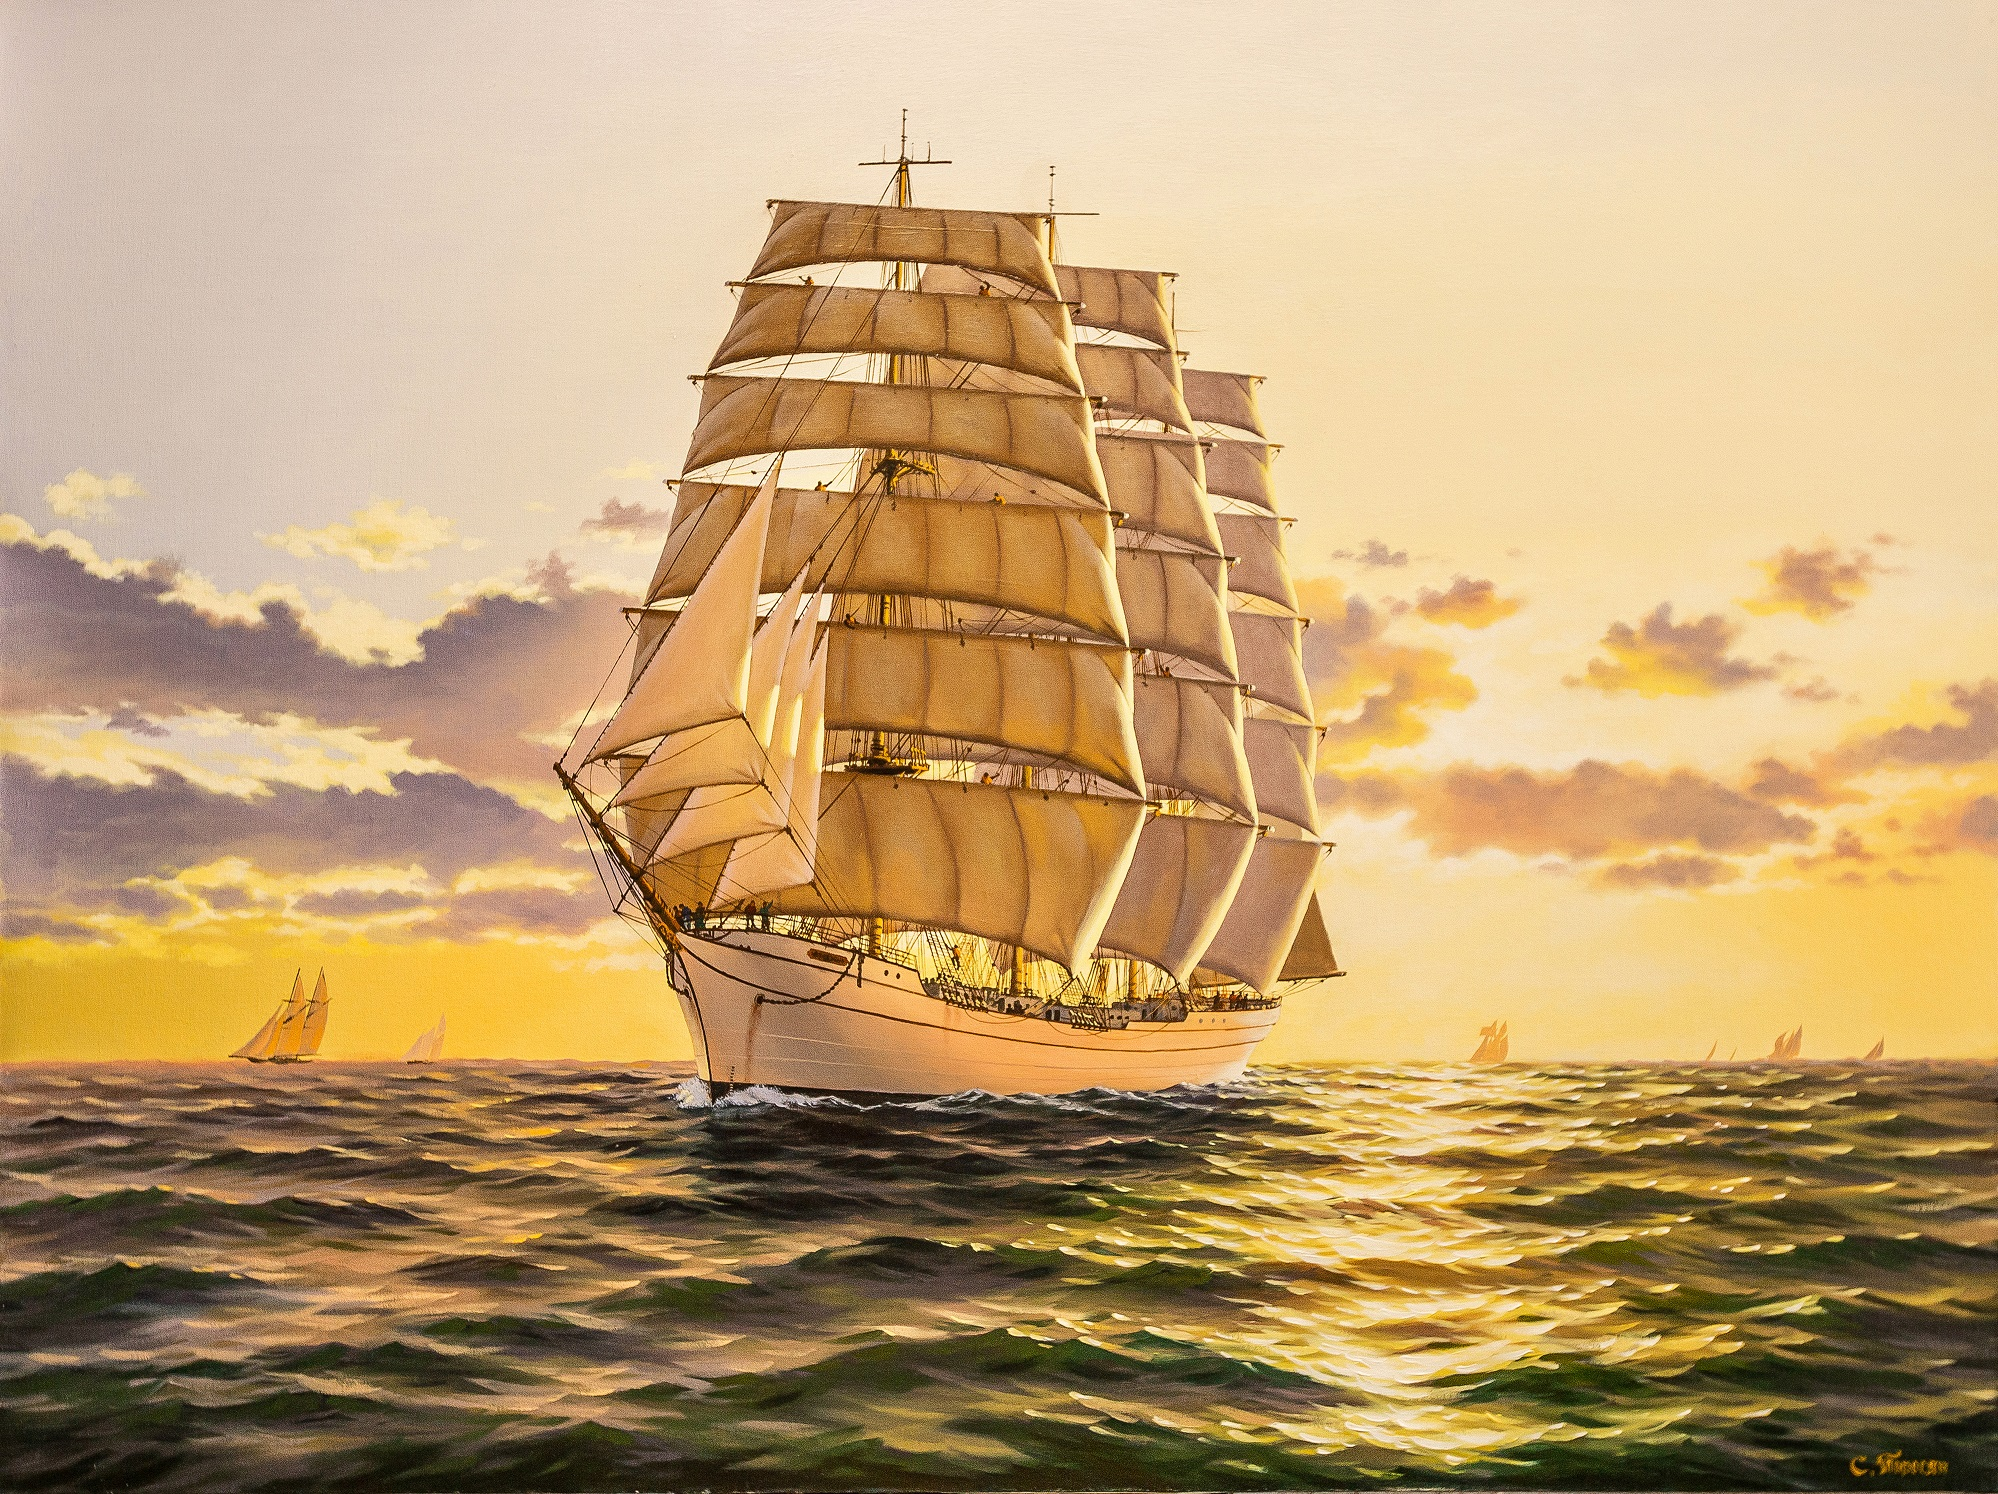 Sunset on the sea  artwork by Suren Torosyan - art listed for sale on Artplode